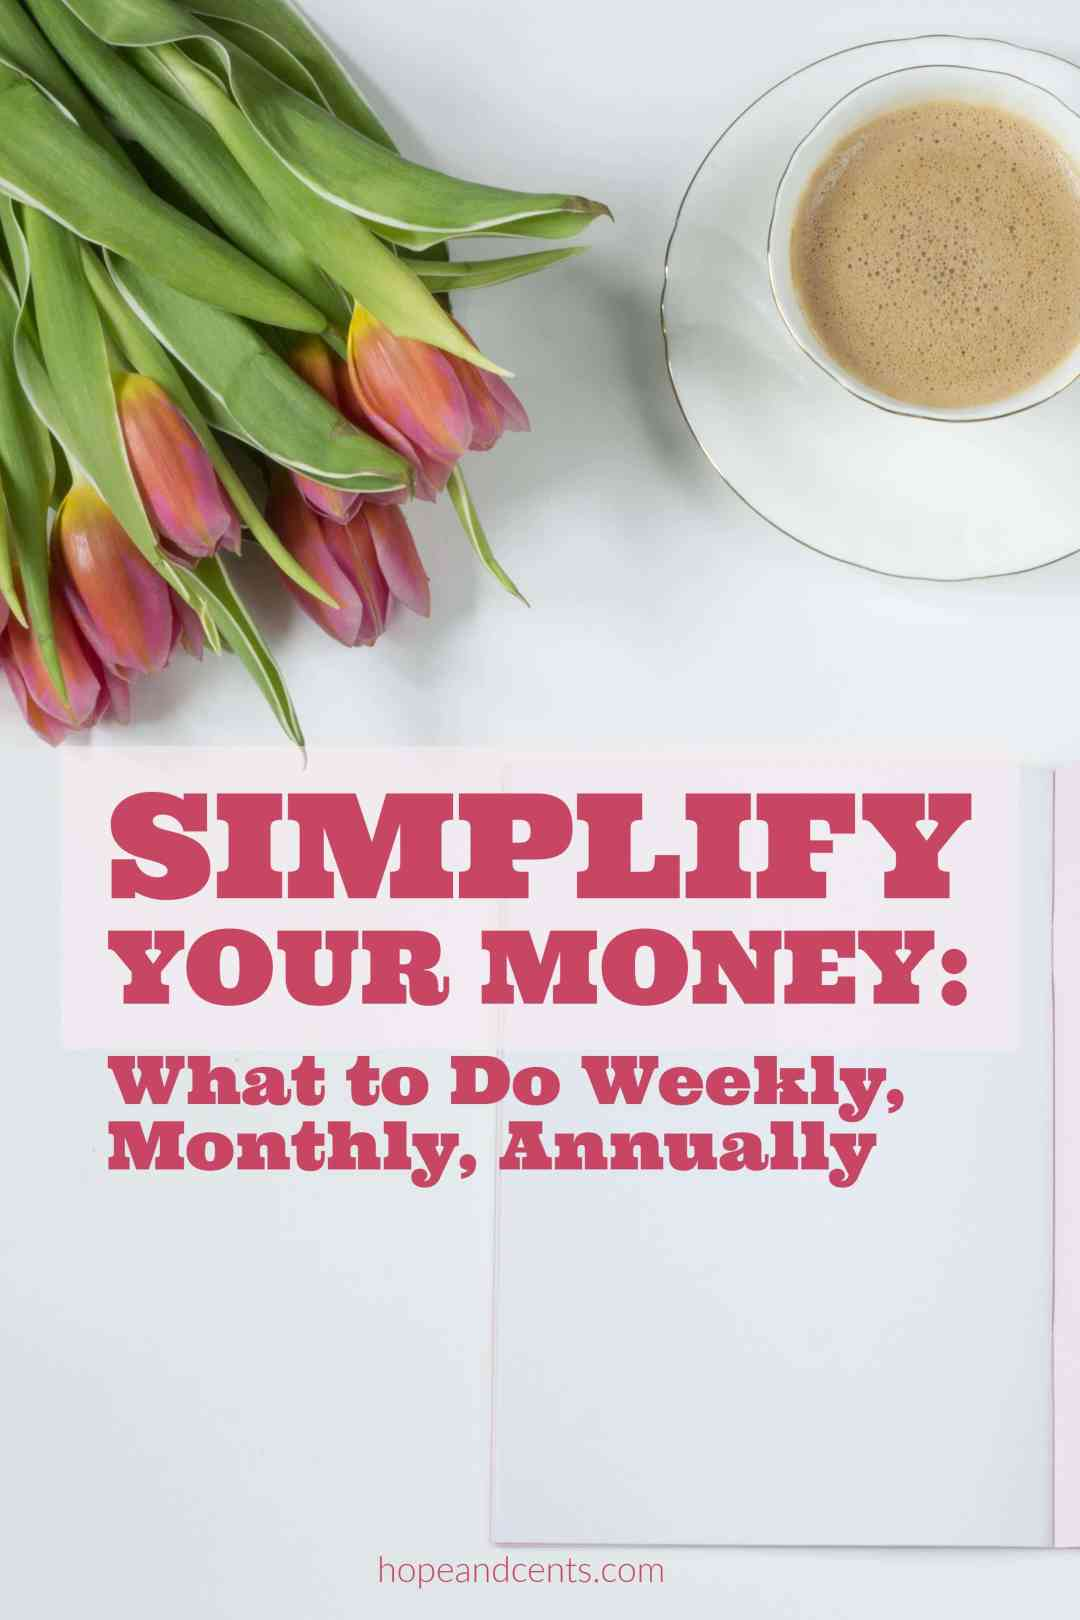 Is your process of managing your finances unnecessarily complicated? If so, it might be time to take steps to simplify your money. These guidelines will show you what money moves to make weekly, monthly, and annually.